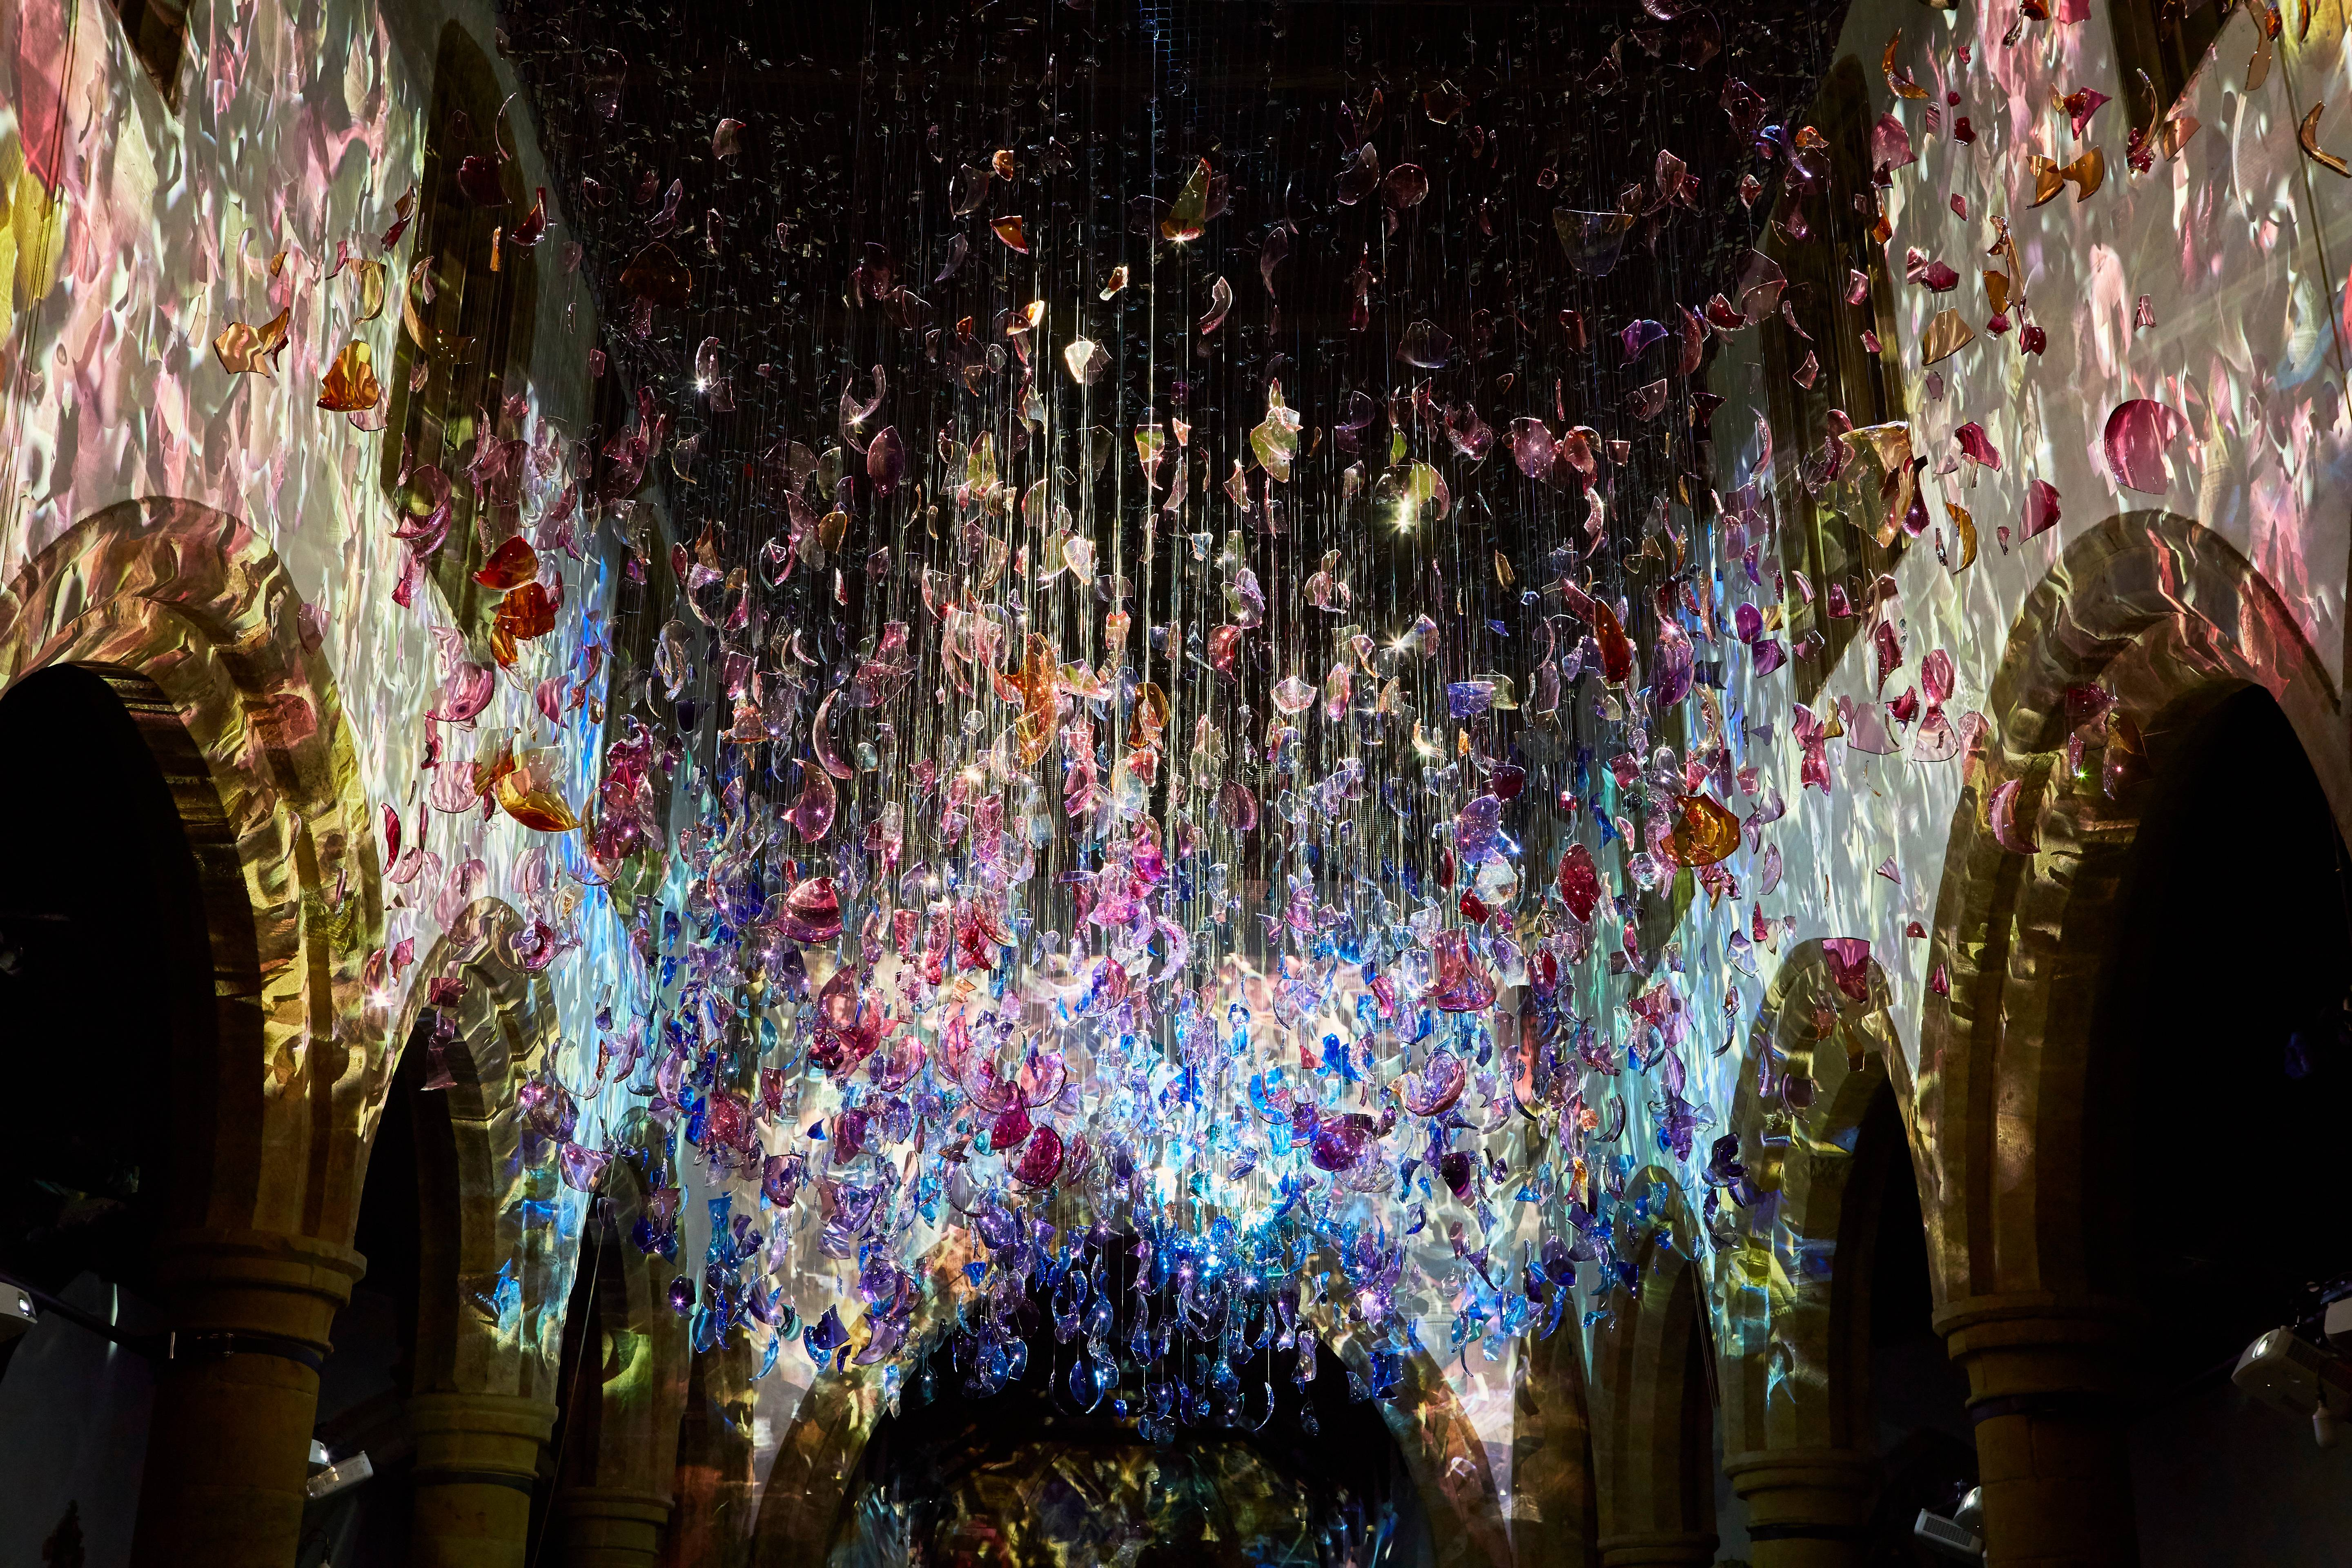 What Matters by Shuster and Moseley at Lumiere Durham 2017